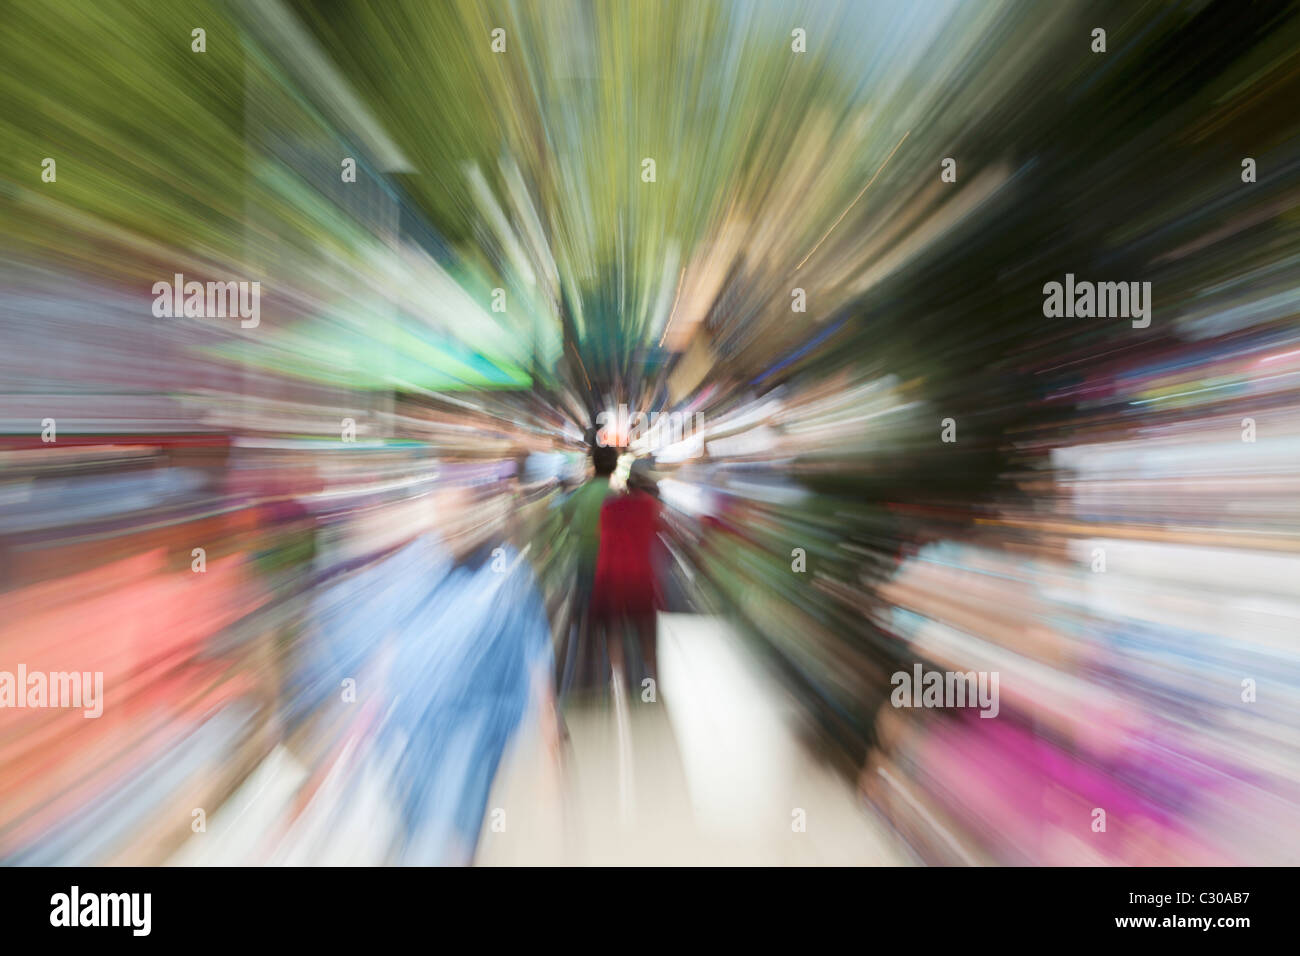 Motion blurred zoom of crowd of people walking - Stock Image